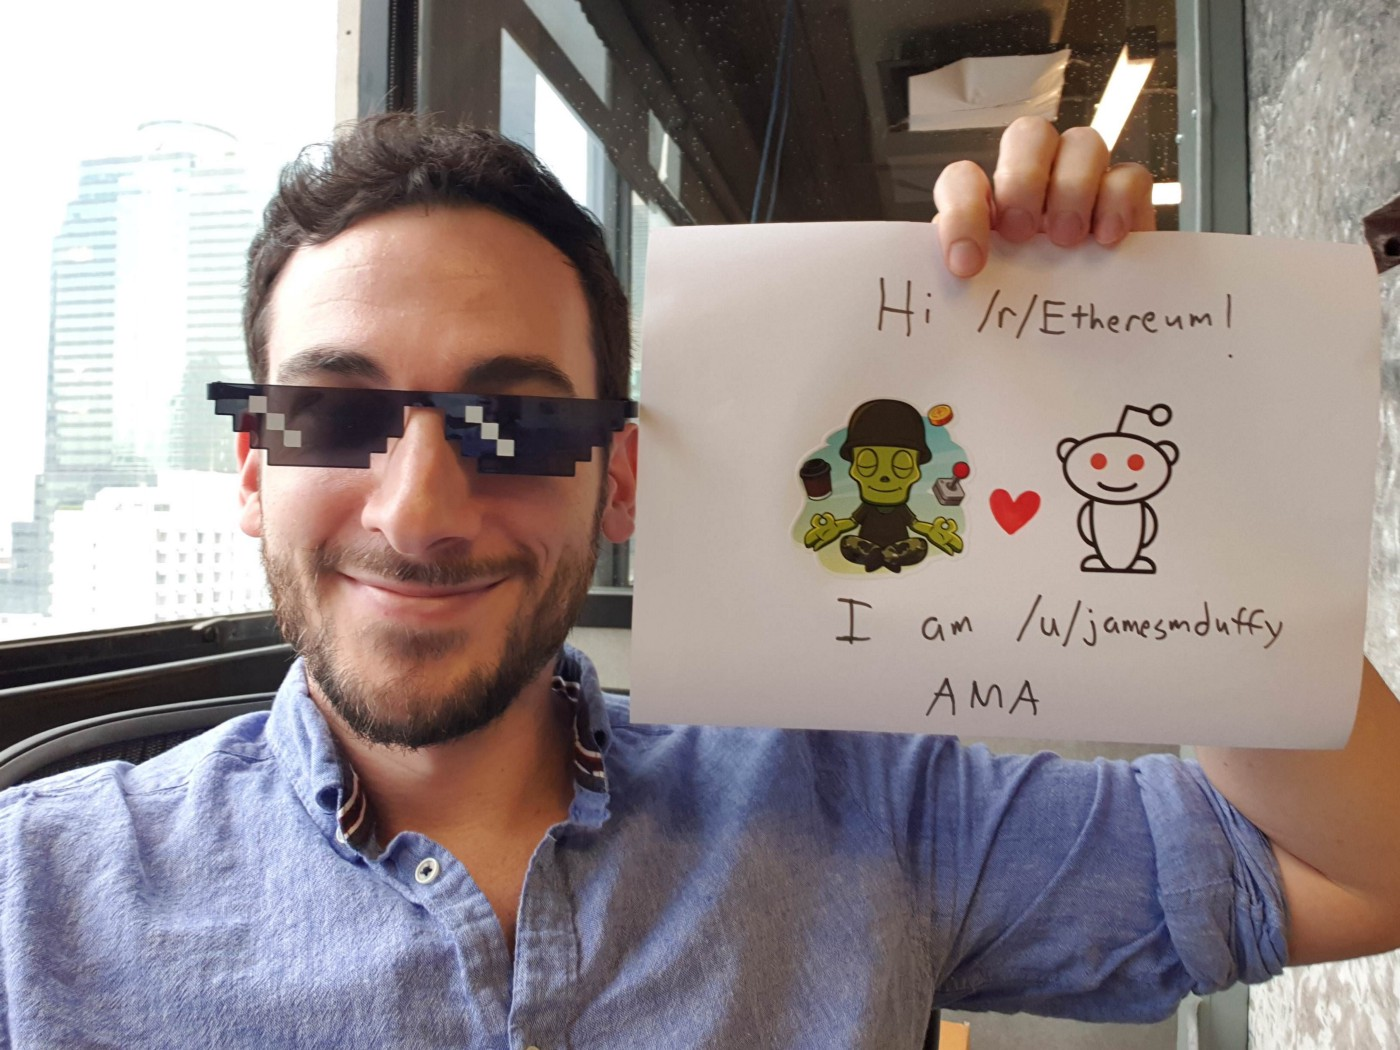 ️Did You Miss Loom Network's Reddit AMA (Ask Me Anything) on /r